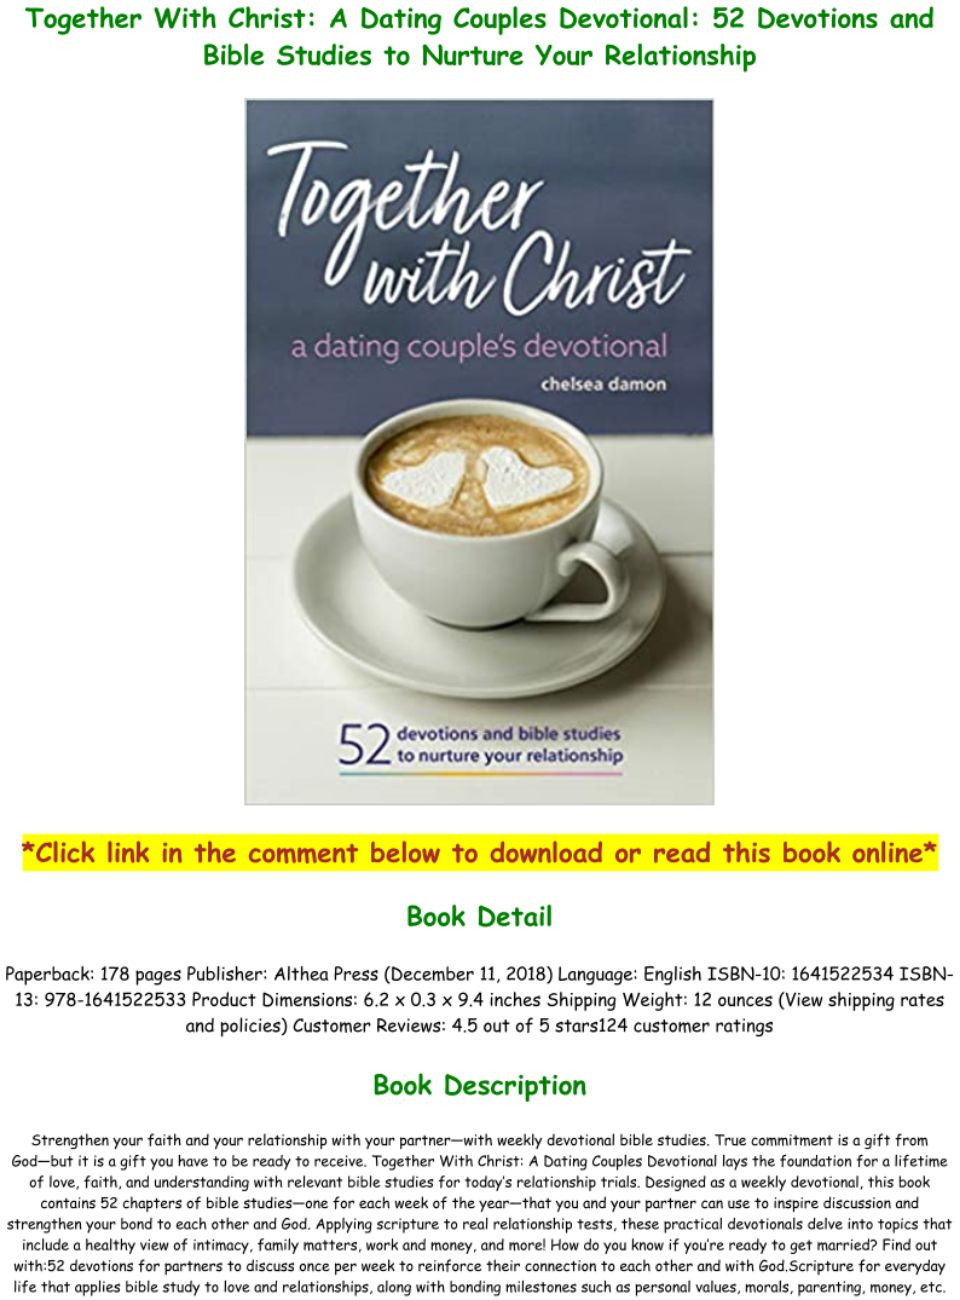 Devotions For Dating Couples Pdf Free